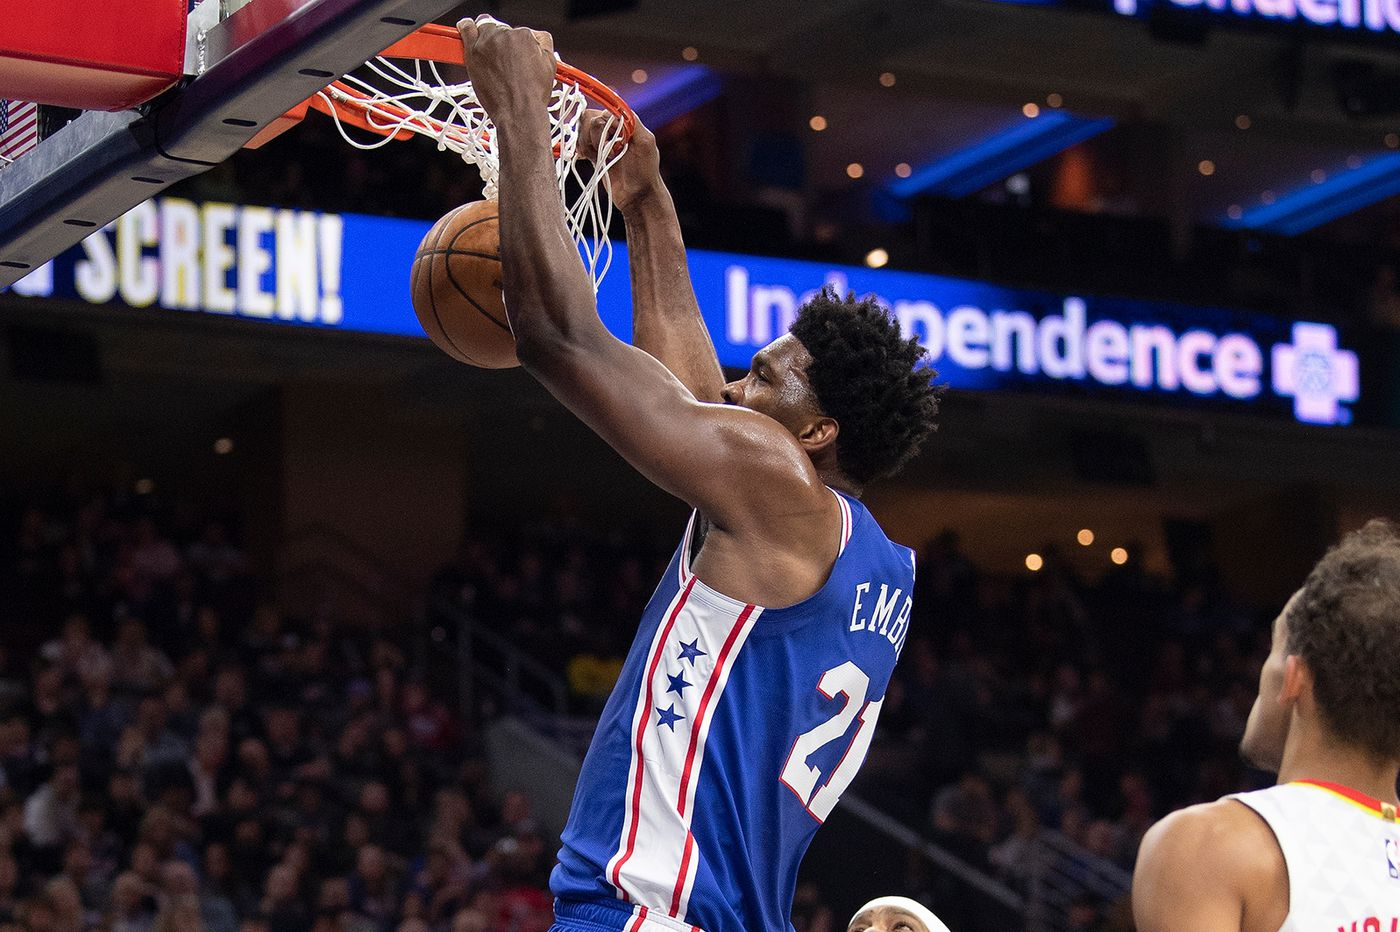 Joel Embiid scores a career-high 49 points as the Sixers beat Atlanta, 129-112